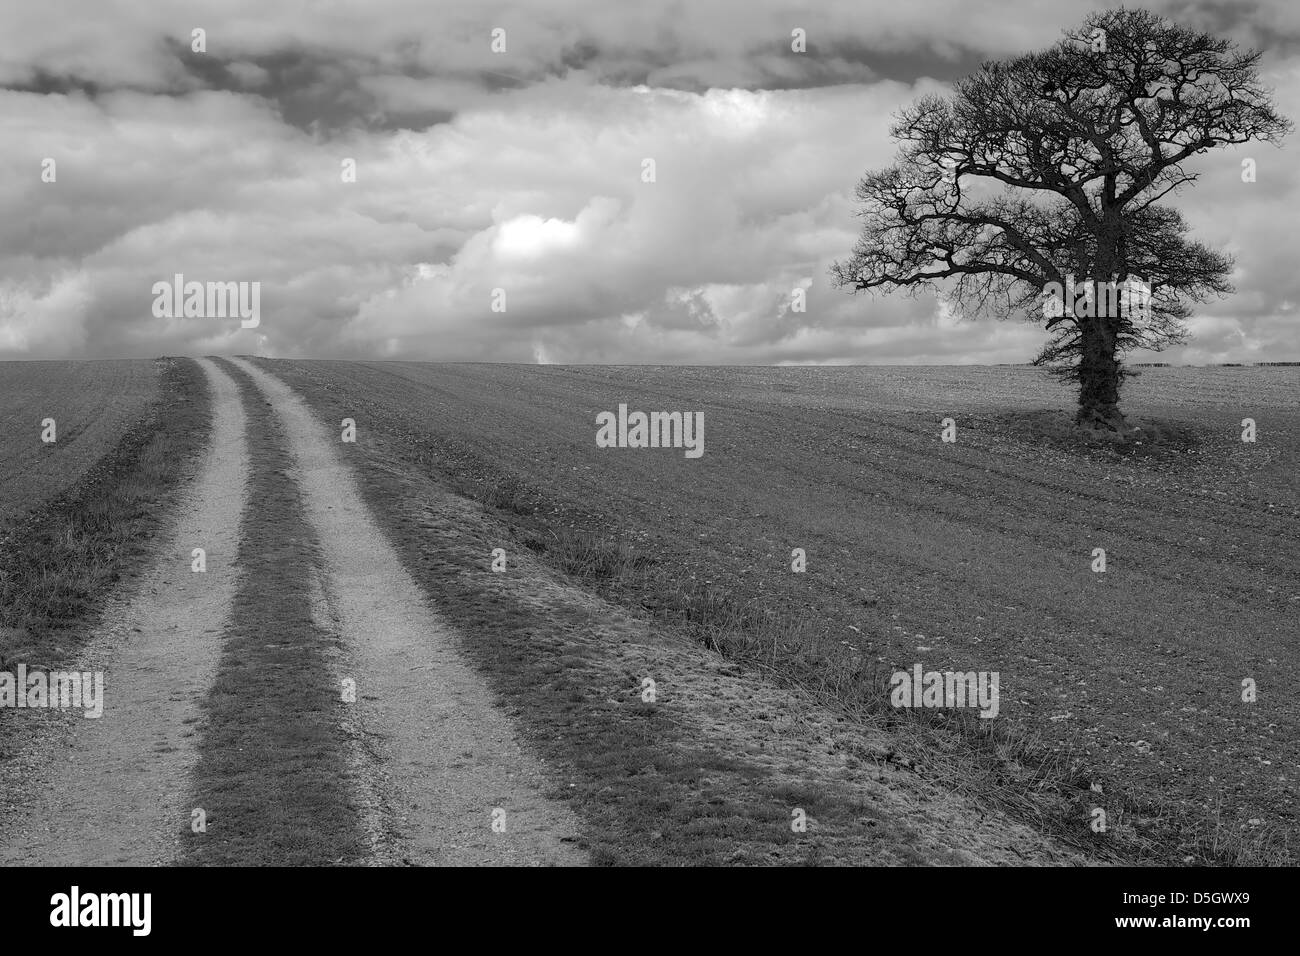 Black & White Tree in field against a cloudy sky - Stock Image